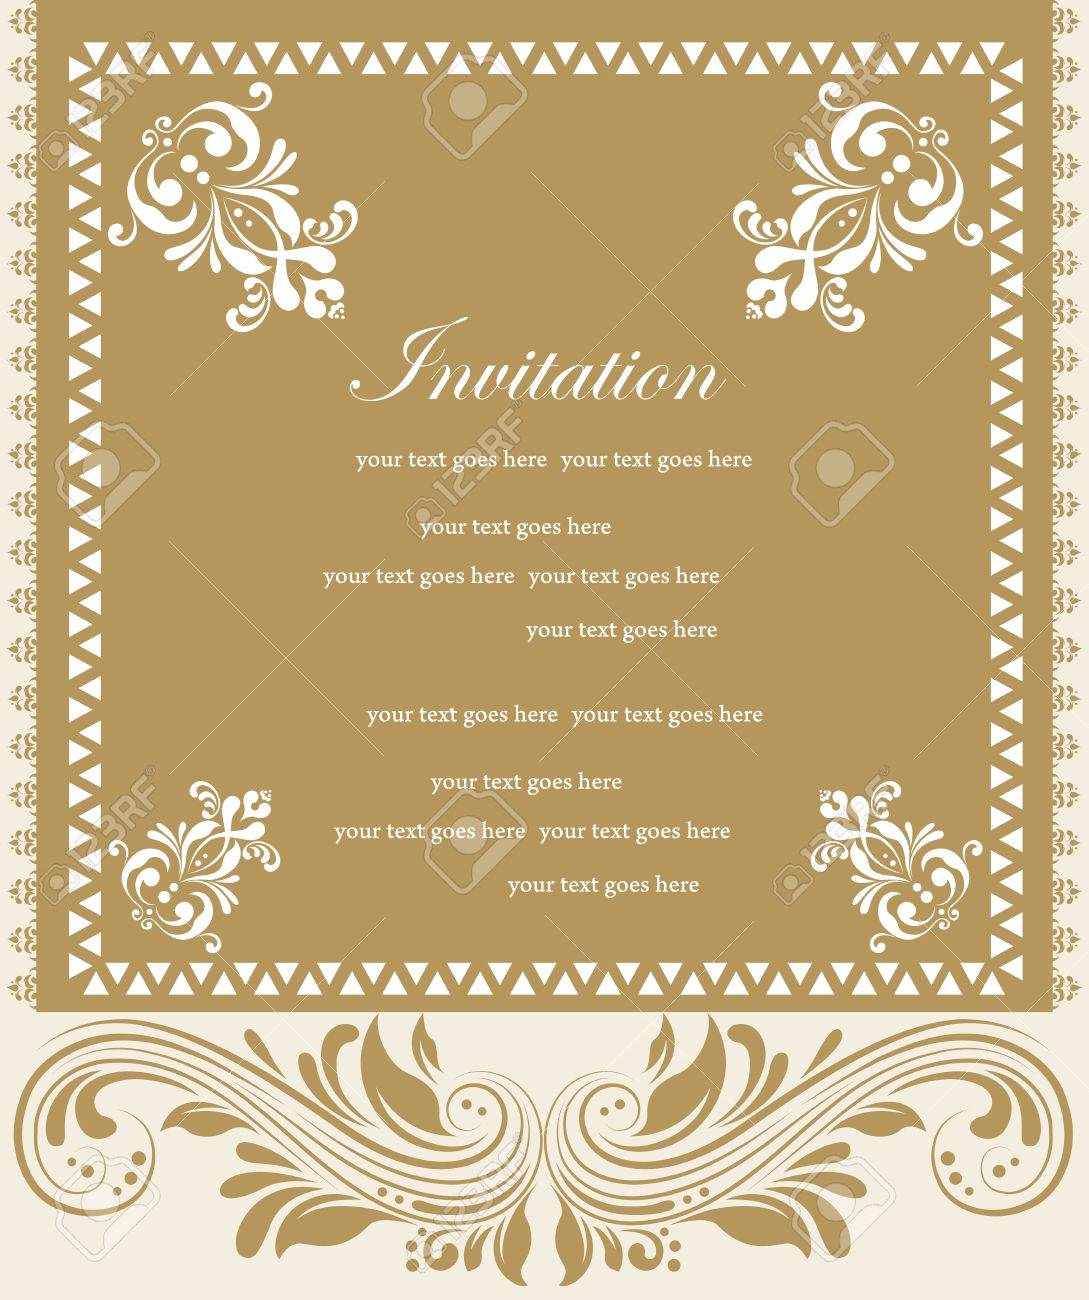 Vintage invitation card with ornate elegant retro abstract floral beige and light brown flowers and leaves on light brown and beige background with frame borders and text label vector illustration vintage invitation stopboris Choice Image